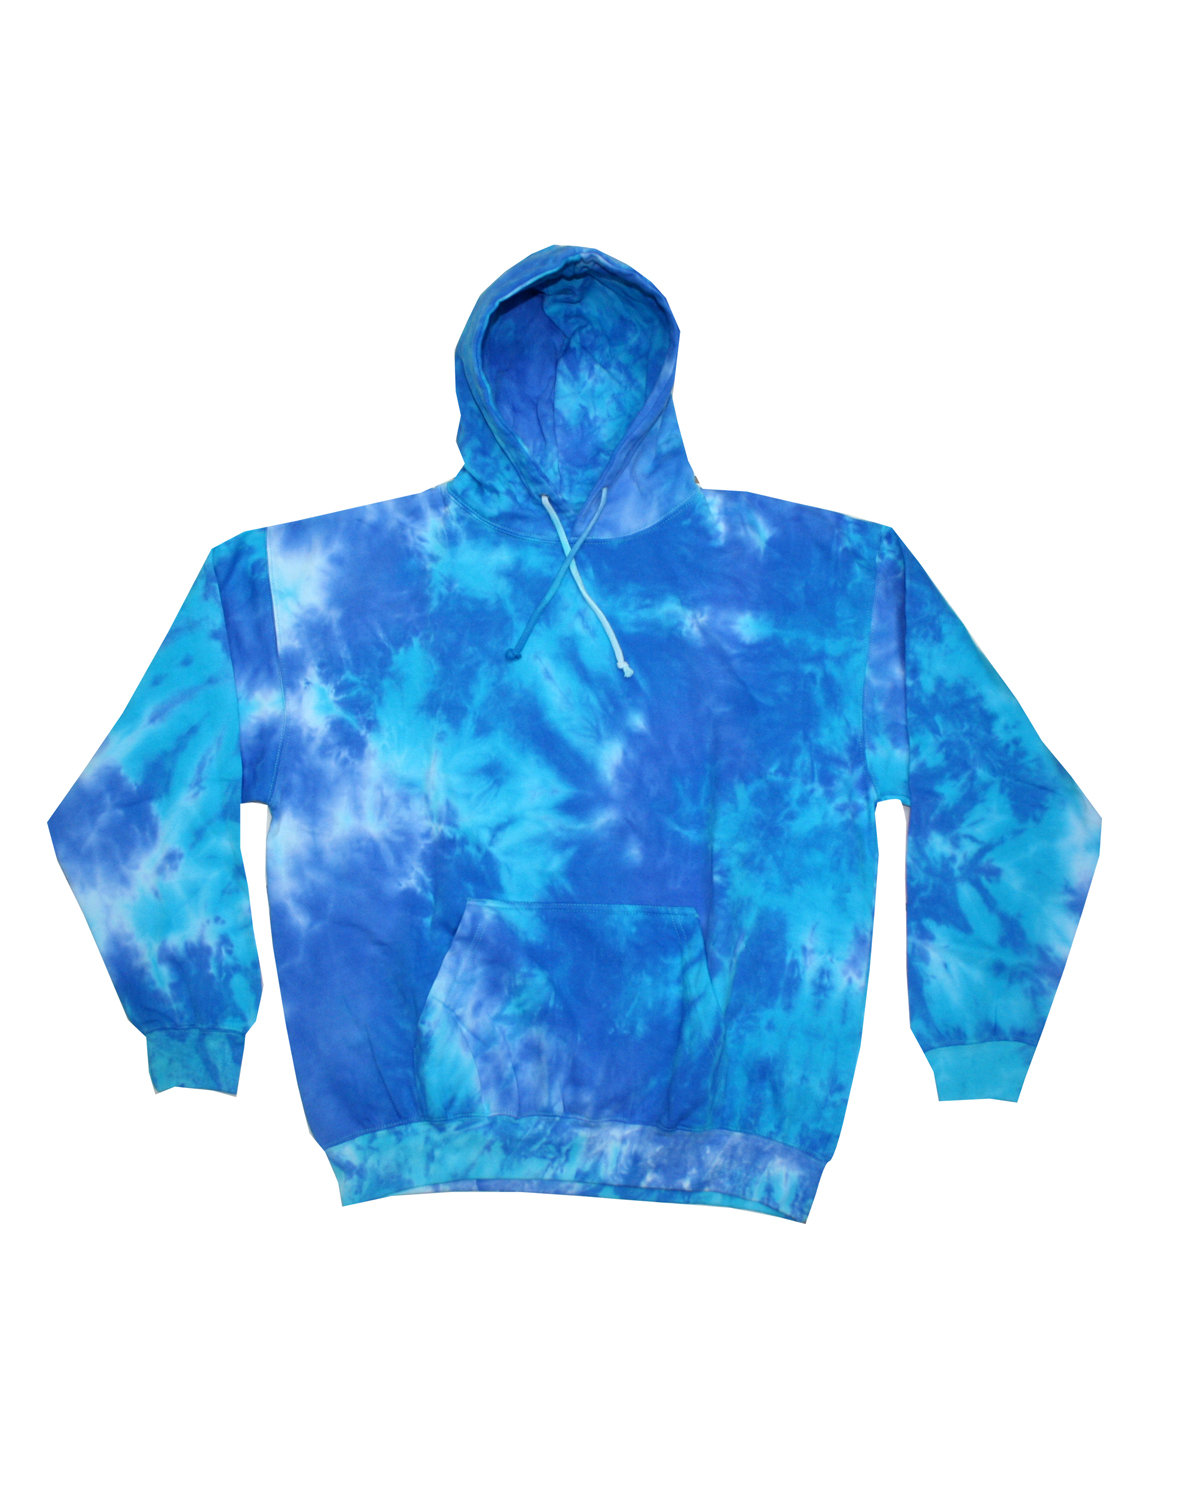 Tie-Dye Youth 8.5 oz. Tie-Dyed Pullover Hooded Sweatshirt BLUE MIX